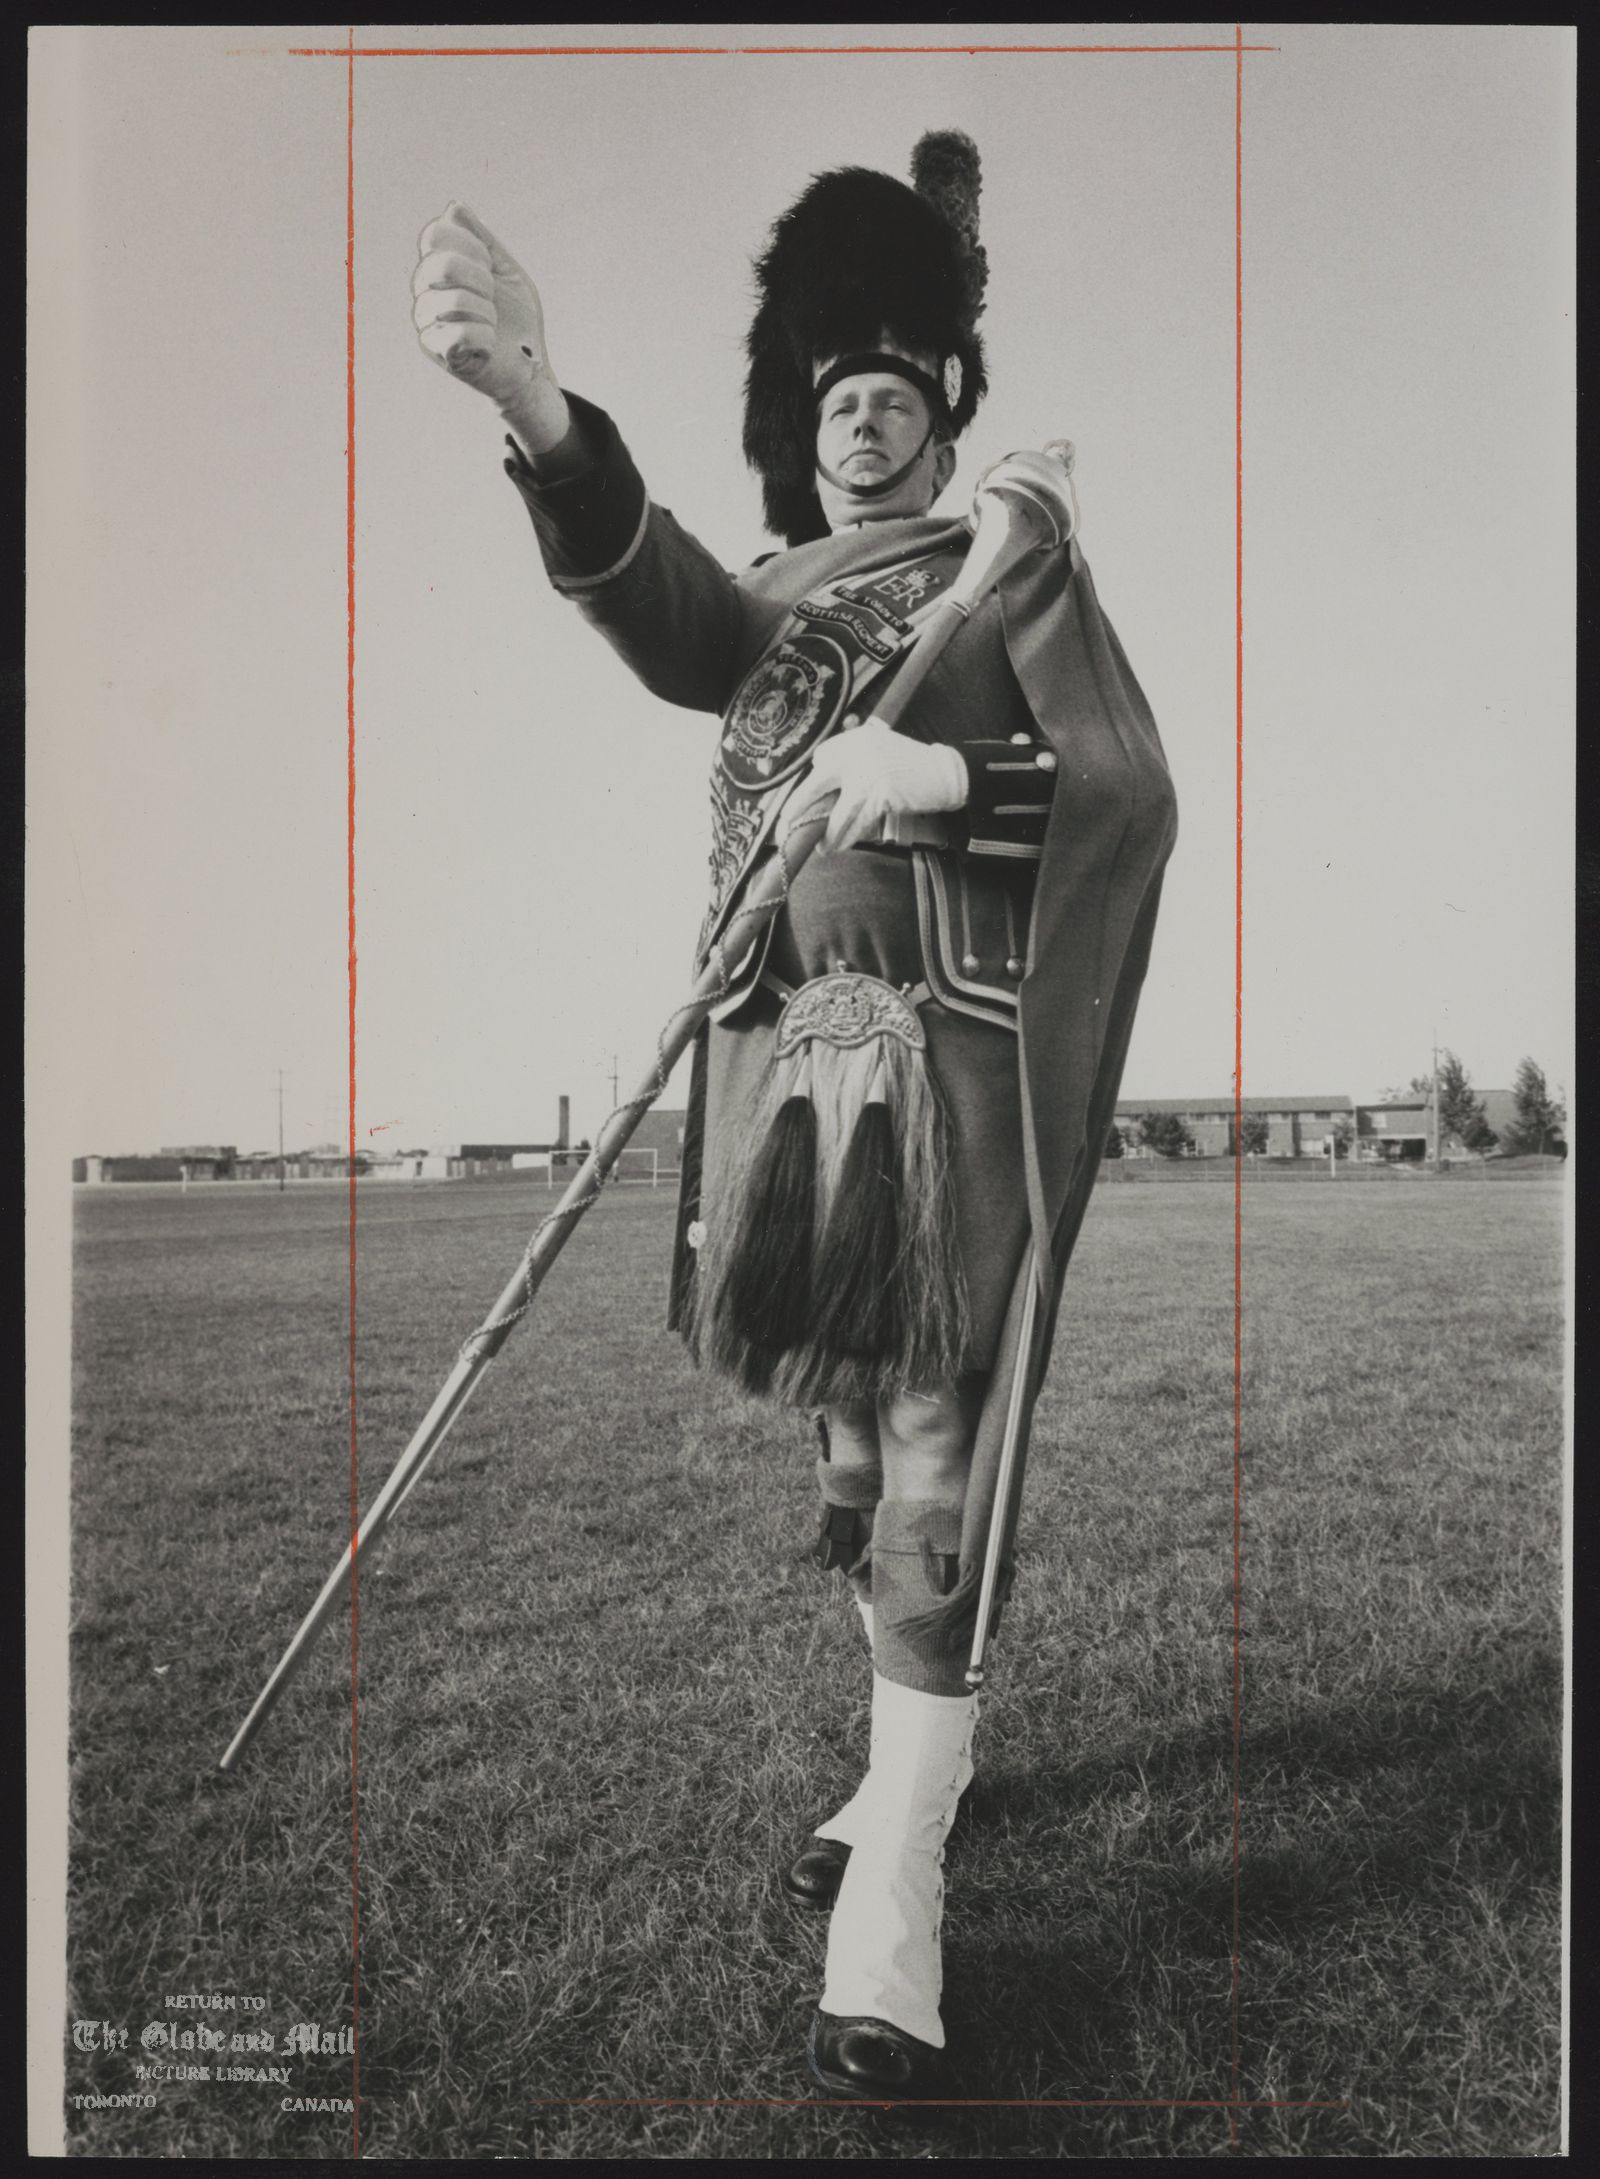 Norman (Drum Major) MacKENZIE Toronto. Drum Major Norman MacKenzie displays form that earned him the drum major's championship, with a perfect score, at Edinburgh Military Tattoo. Mr. MacKenzie, who lives in Rexdale, was drum major for a contingent representing four Canadian regiments.